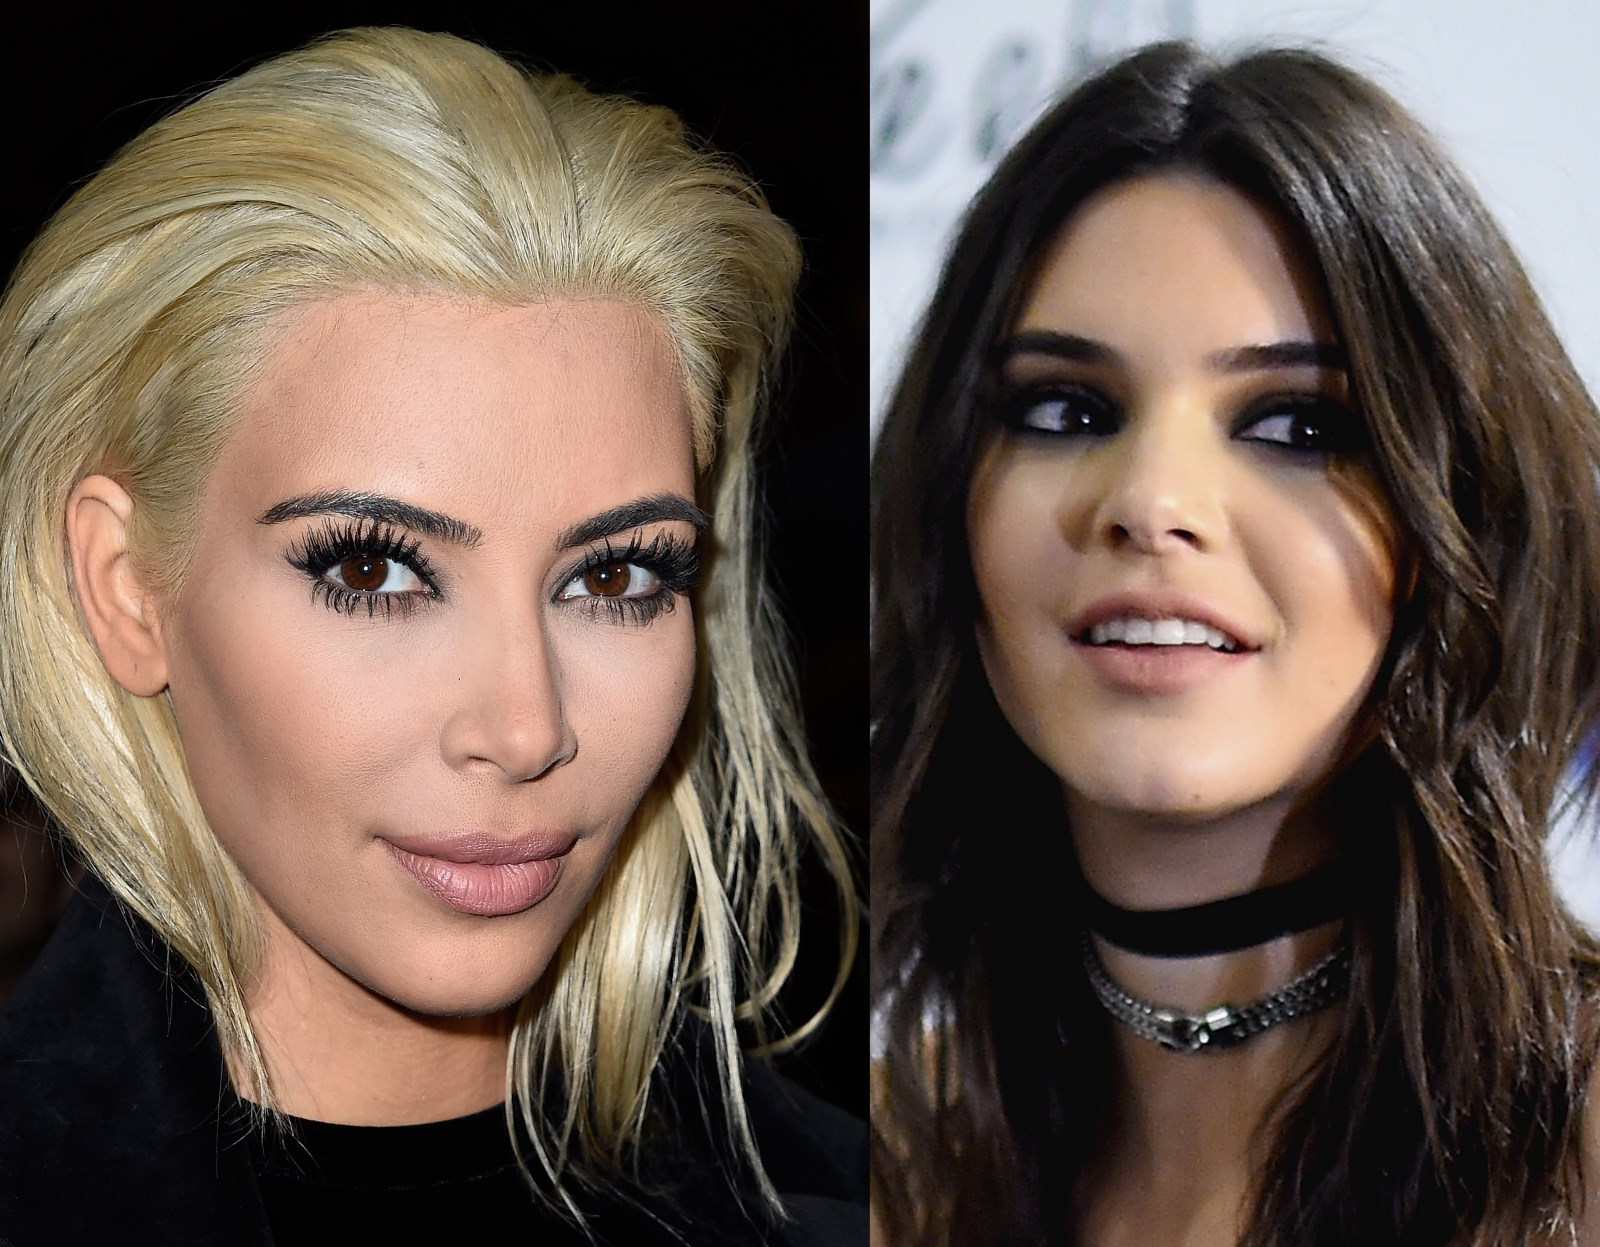 Blonde Kim Kardashian and Kendall Jenner